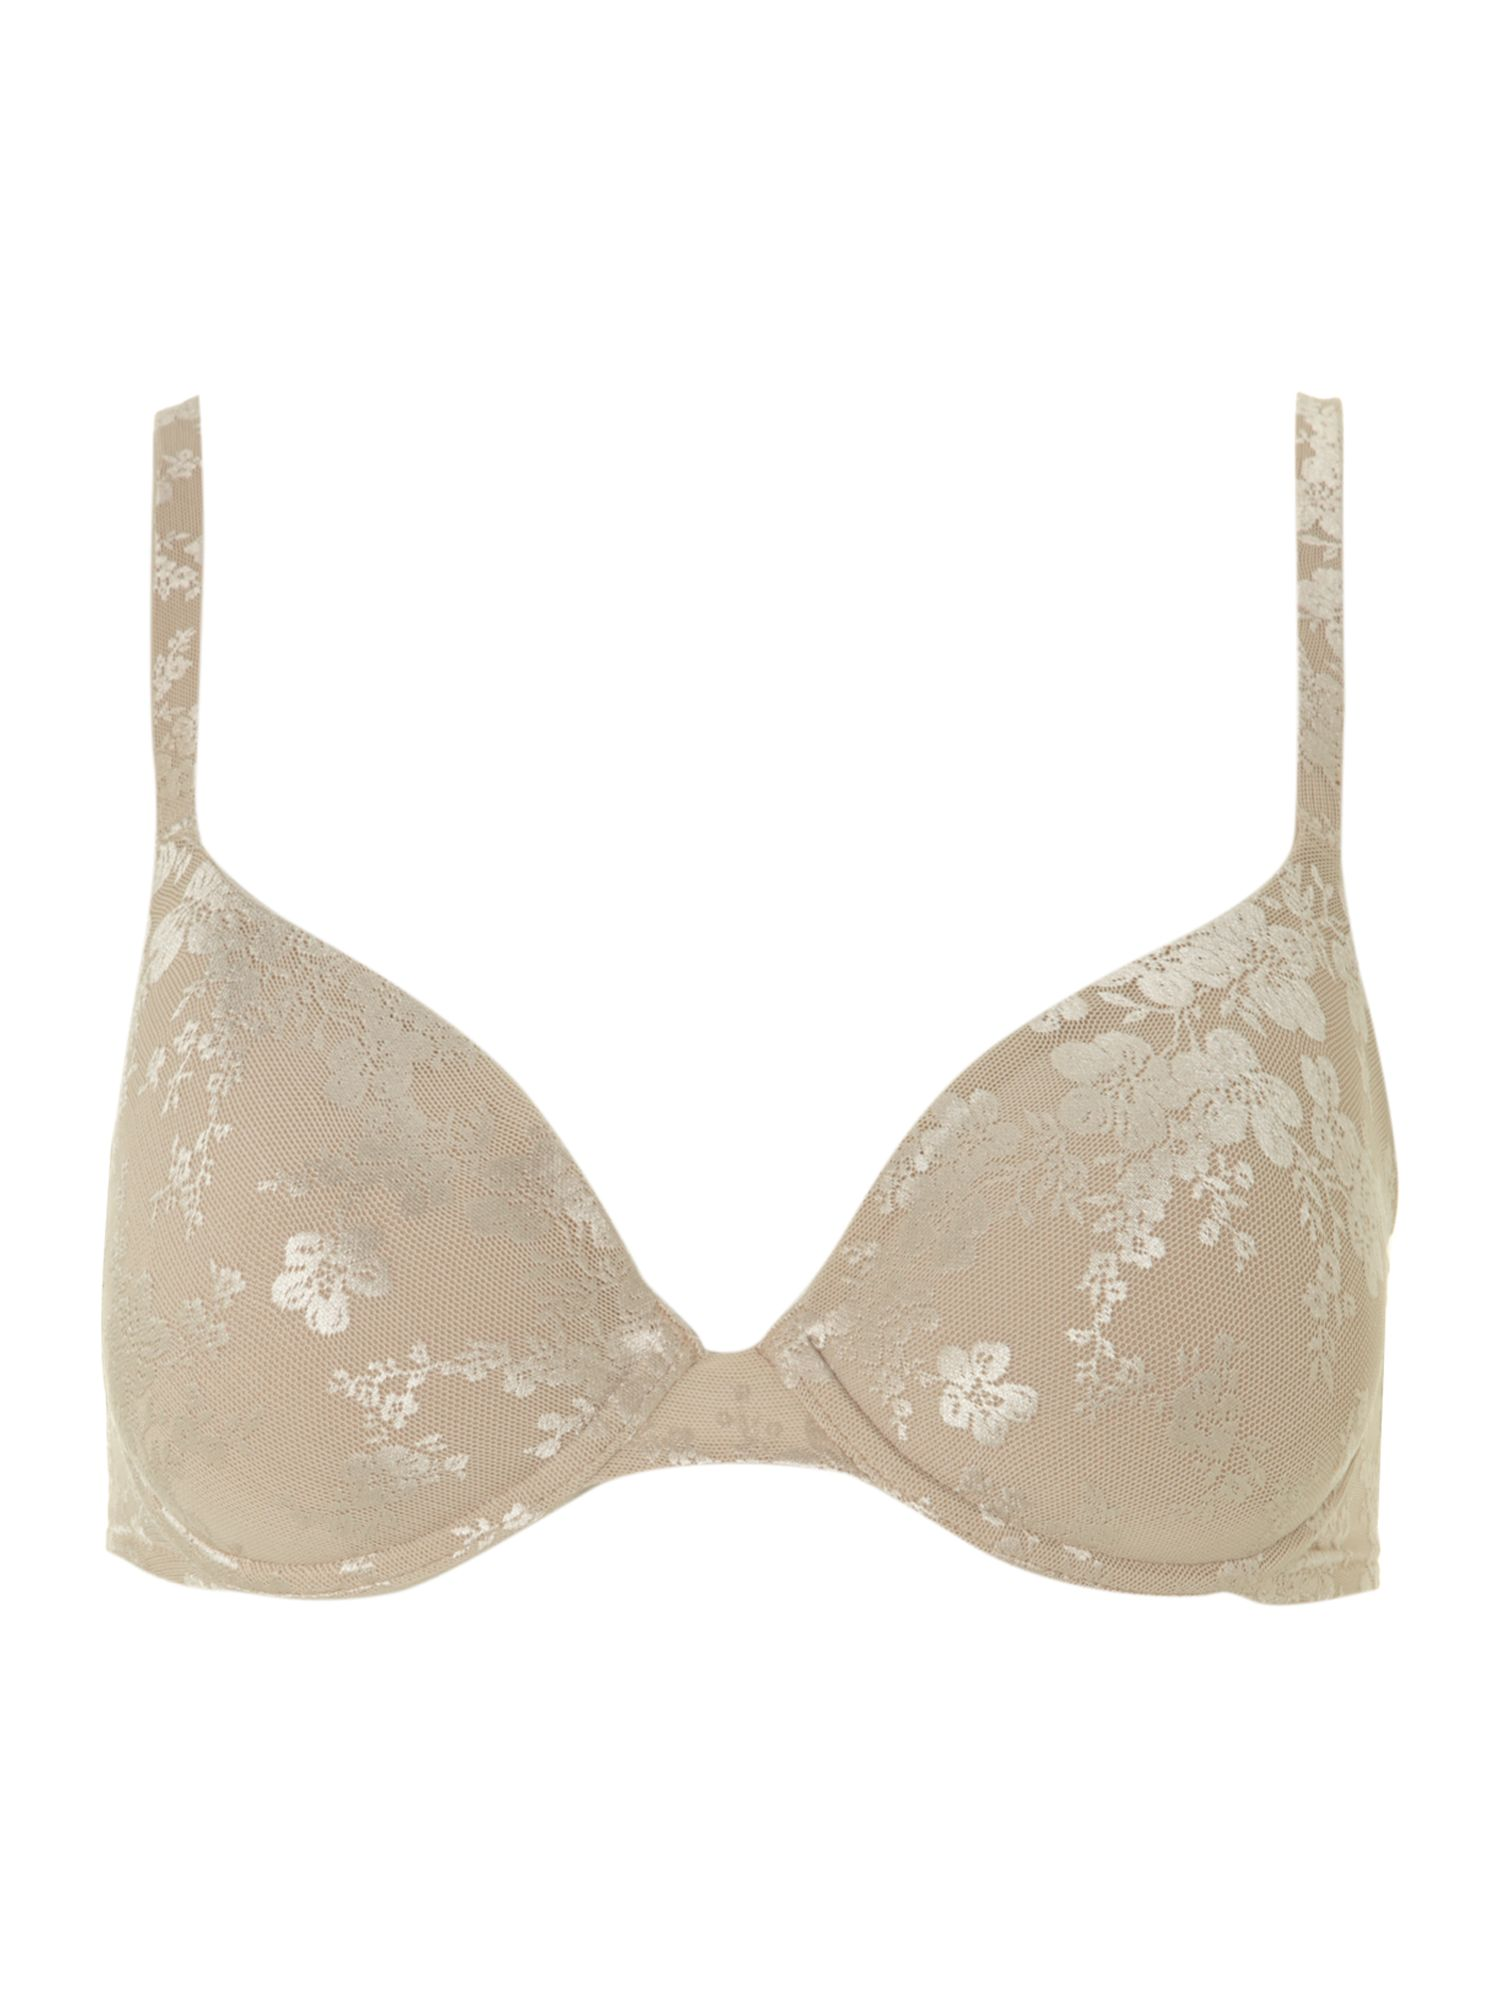 Body make up lace whp bra